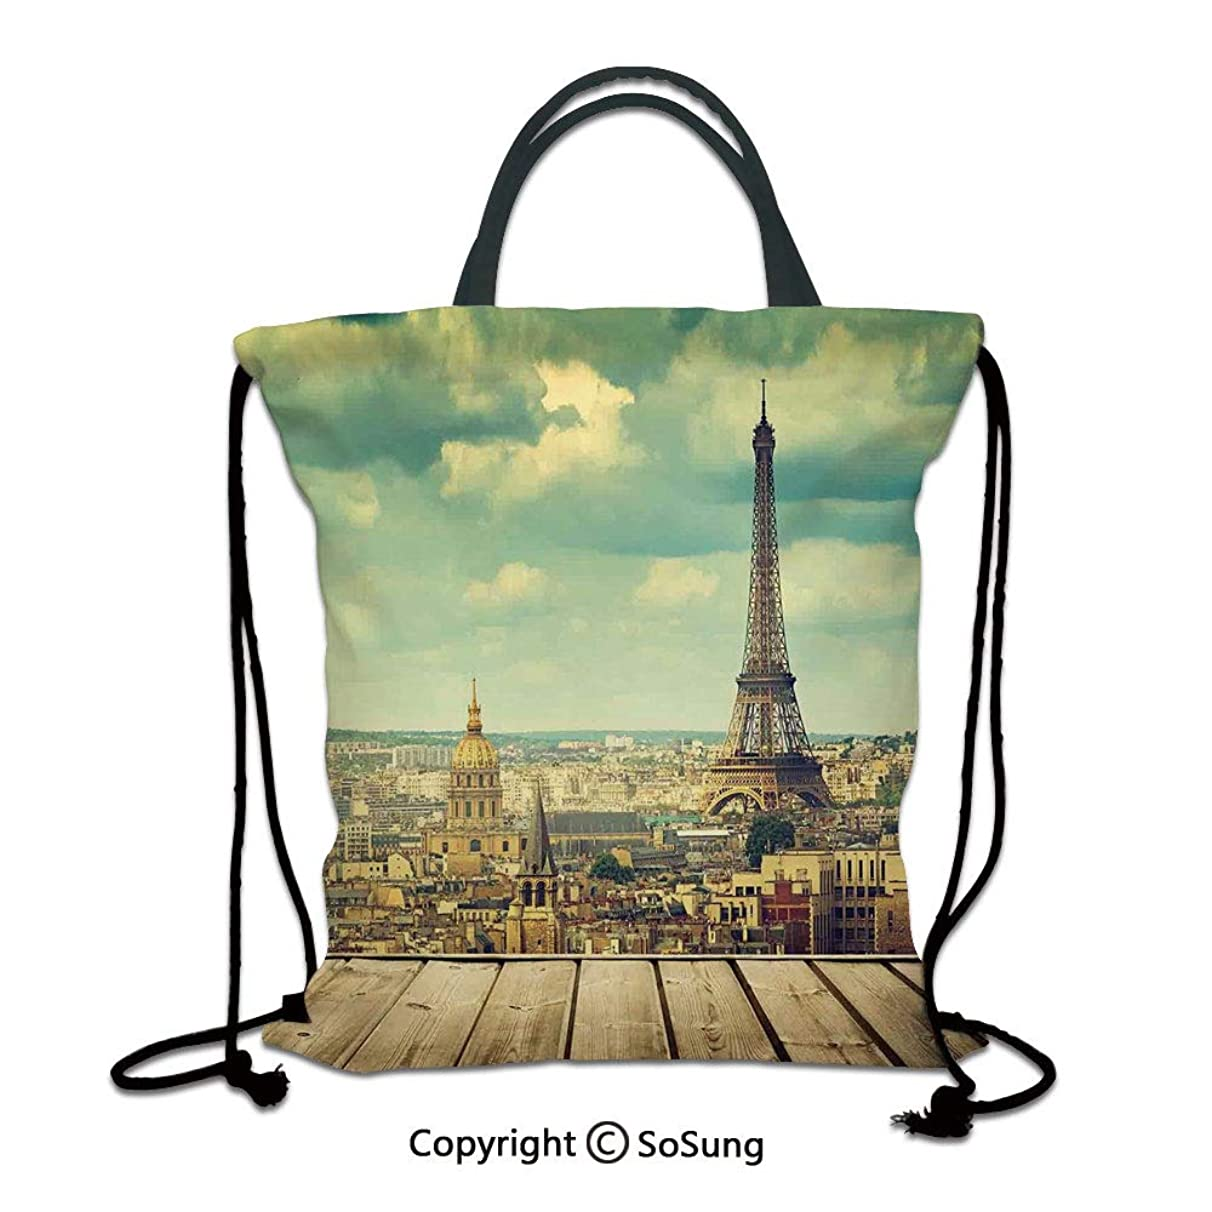 Eiffel Tower 3D Print Drawstring Bag String Backpack,Paris Cityscape with Eiffel Tower View from a Wooden Deck Table Urban Life Classic,for Travel Gym School Beach Shopping,Teal